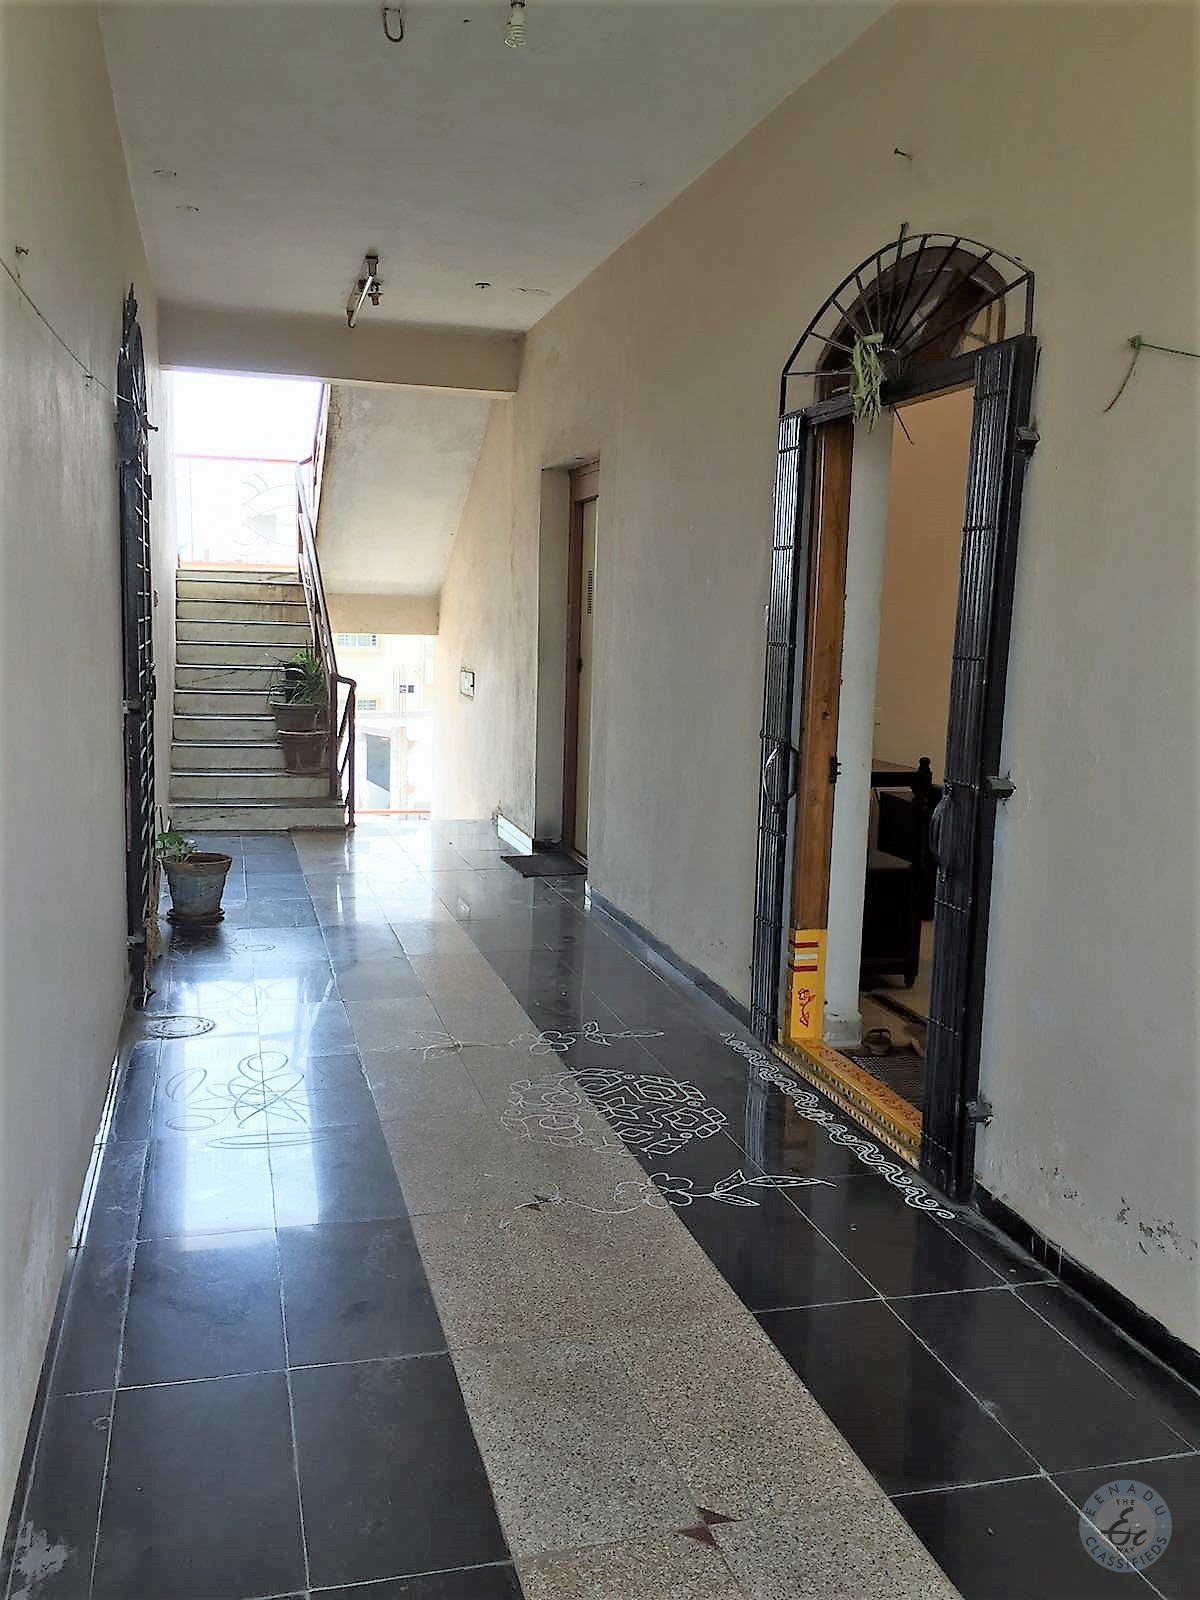 3 Bed Room Flat For Sale At Hyderabad